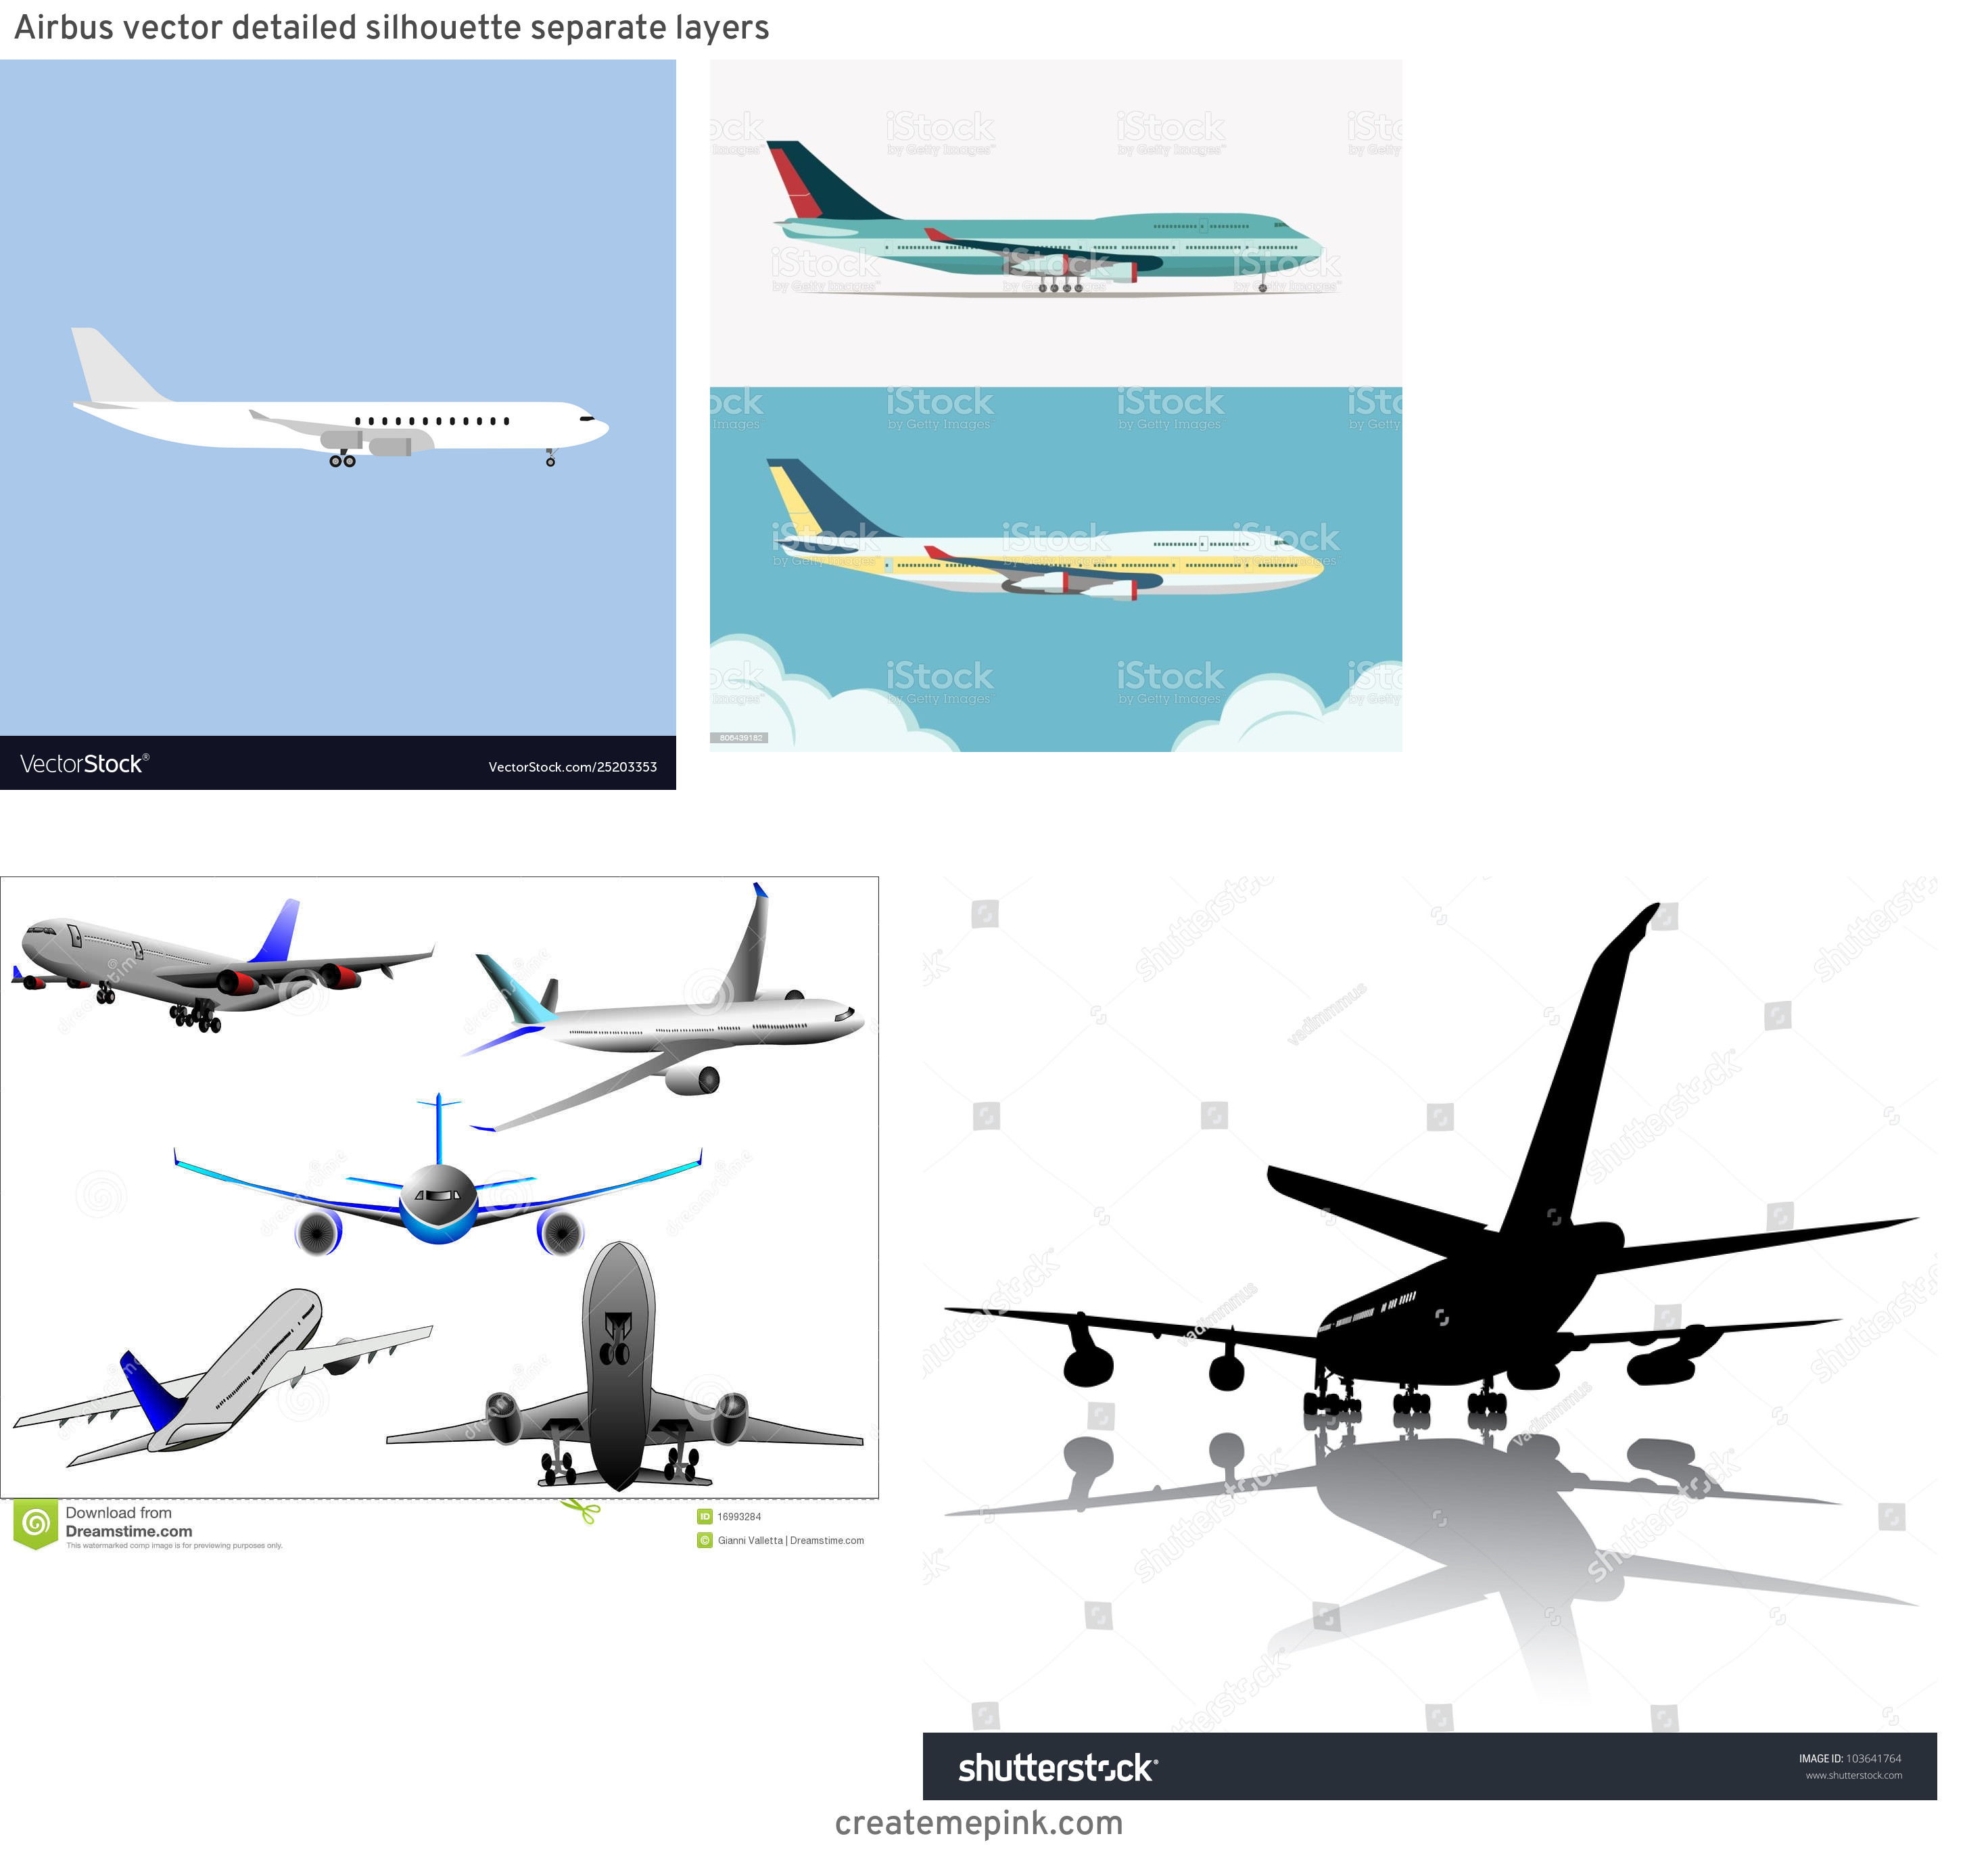 Vector Aerospace Airbus: Airbus Vector Detailed Silhouette Separate Layers